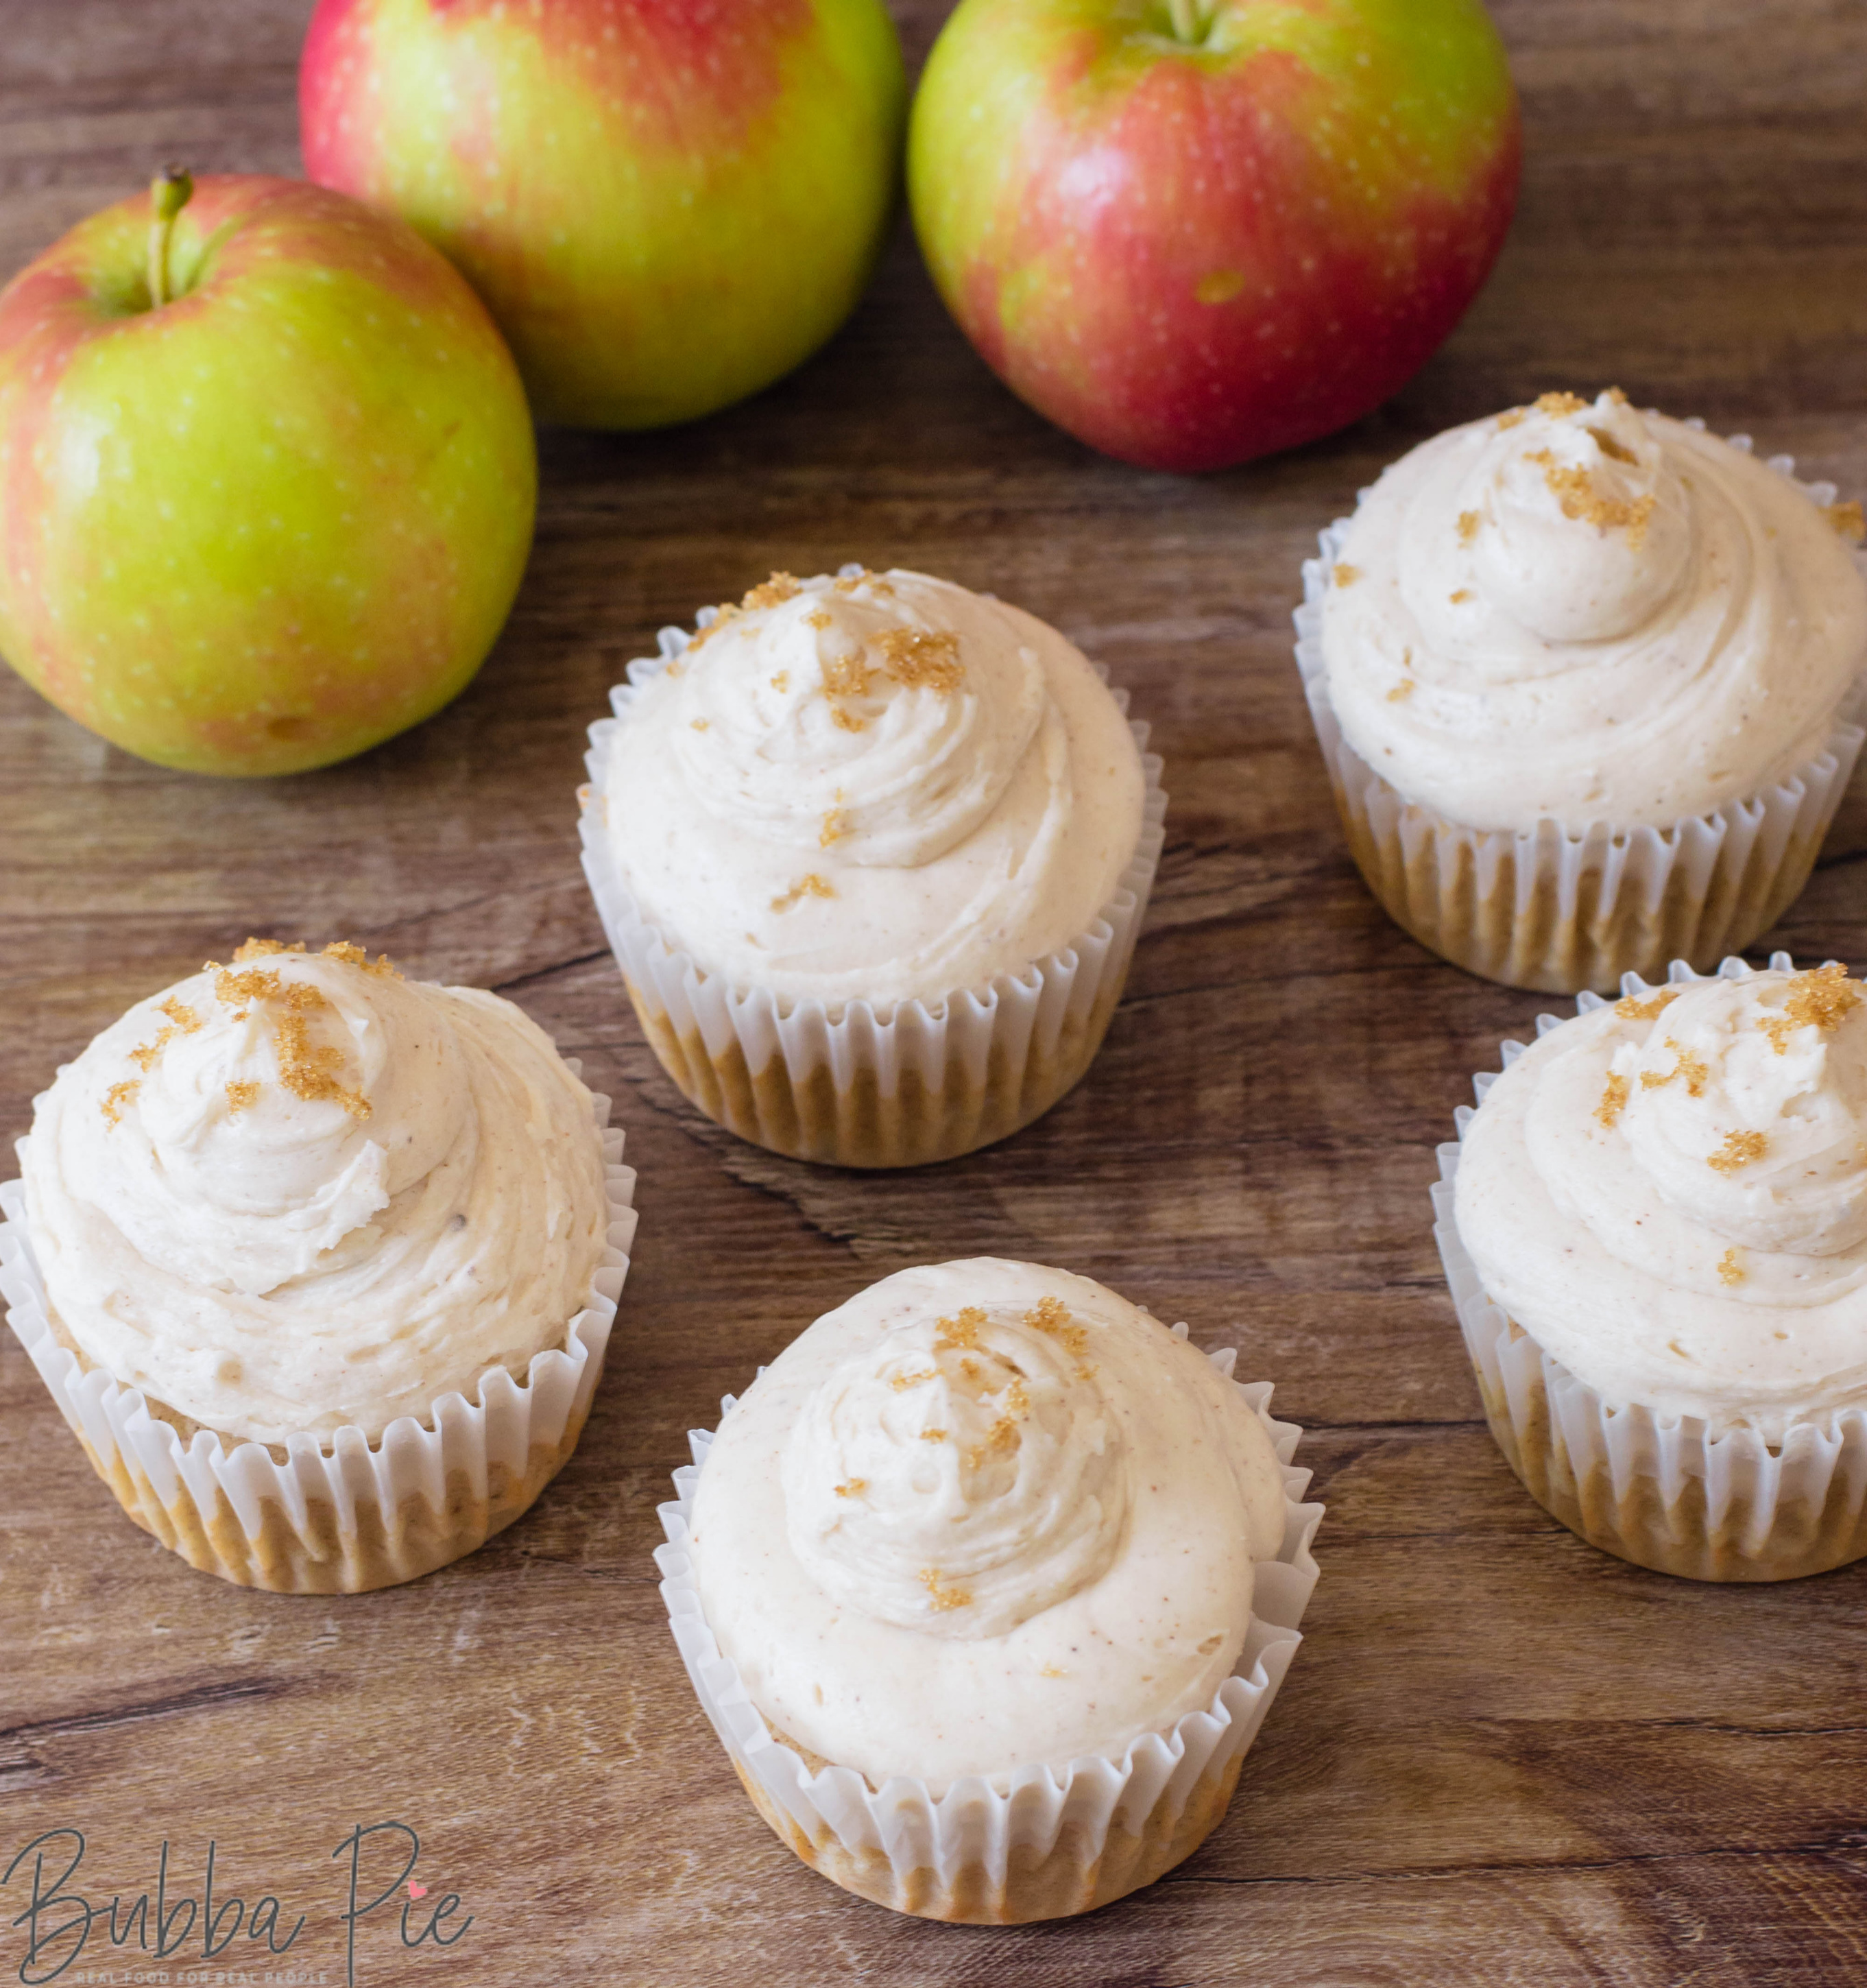 Apple Cinnamon Cupcakes sitting on a table with holiday decorations